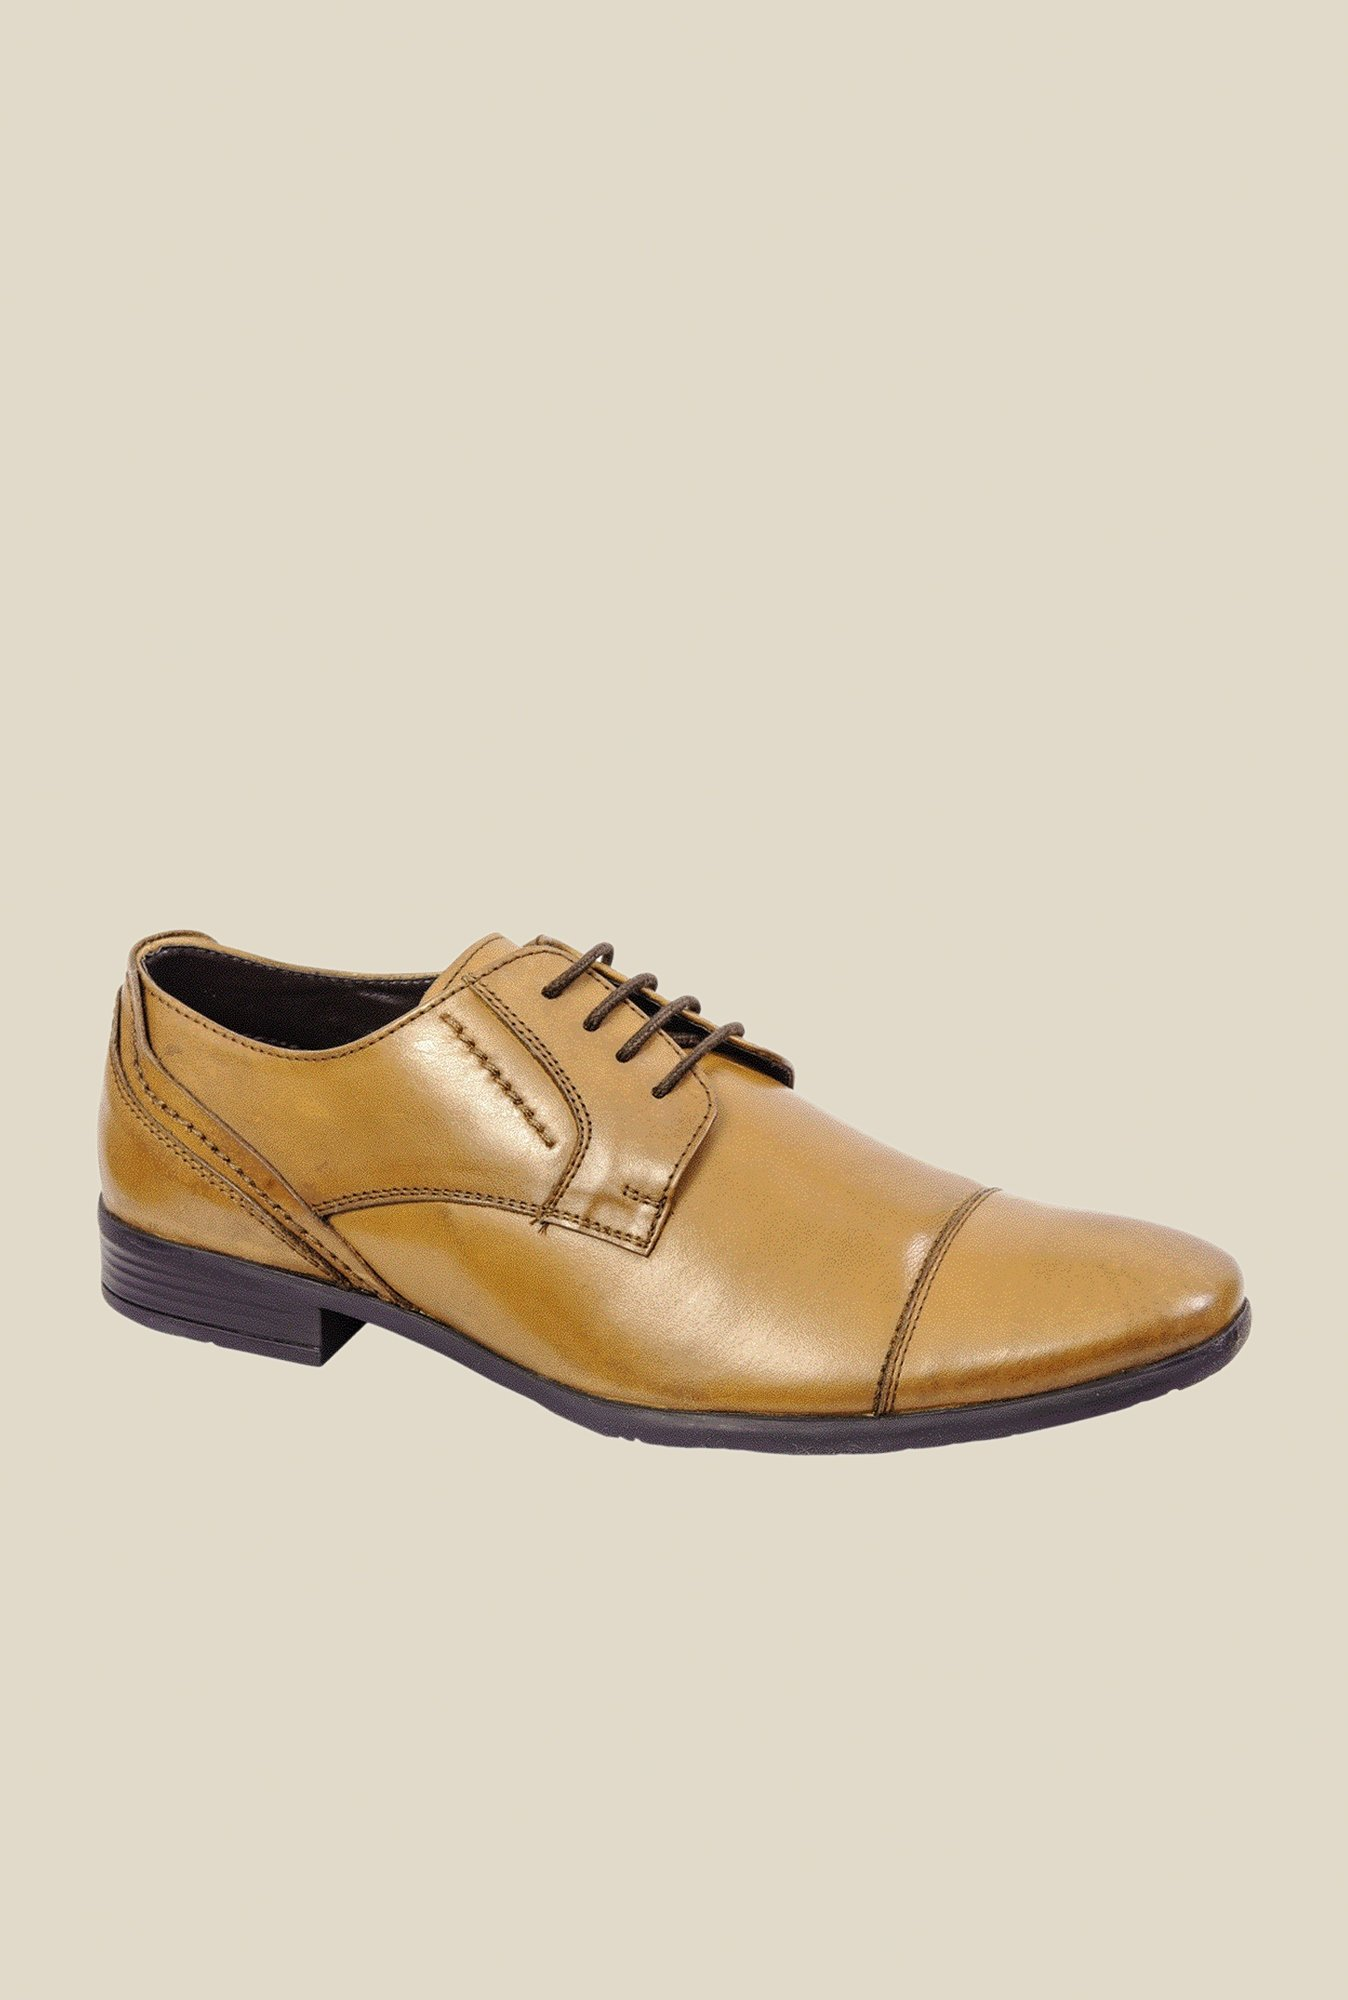 Khadim's Tan Derby Shoes